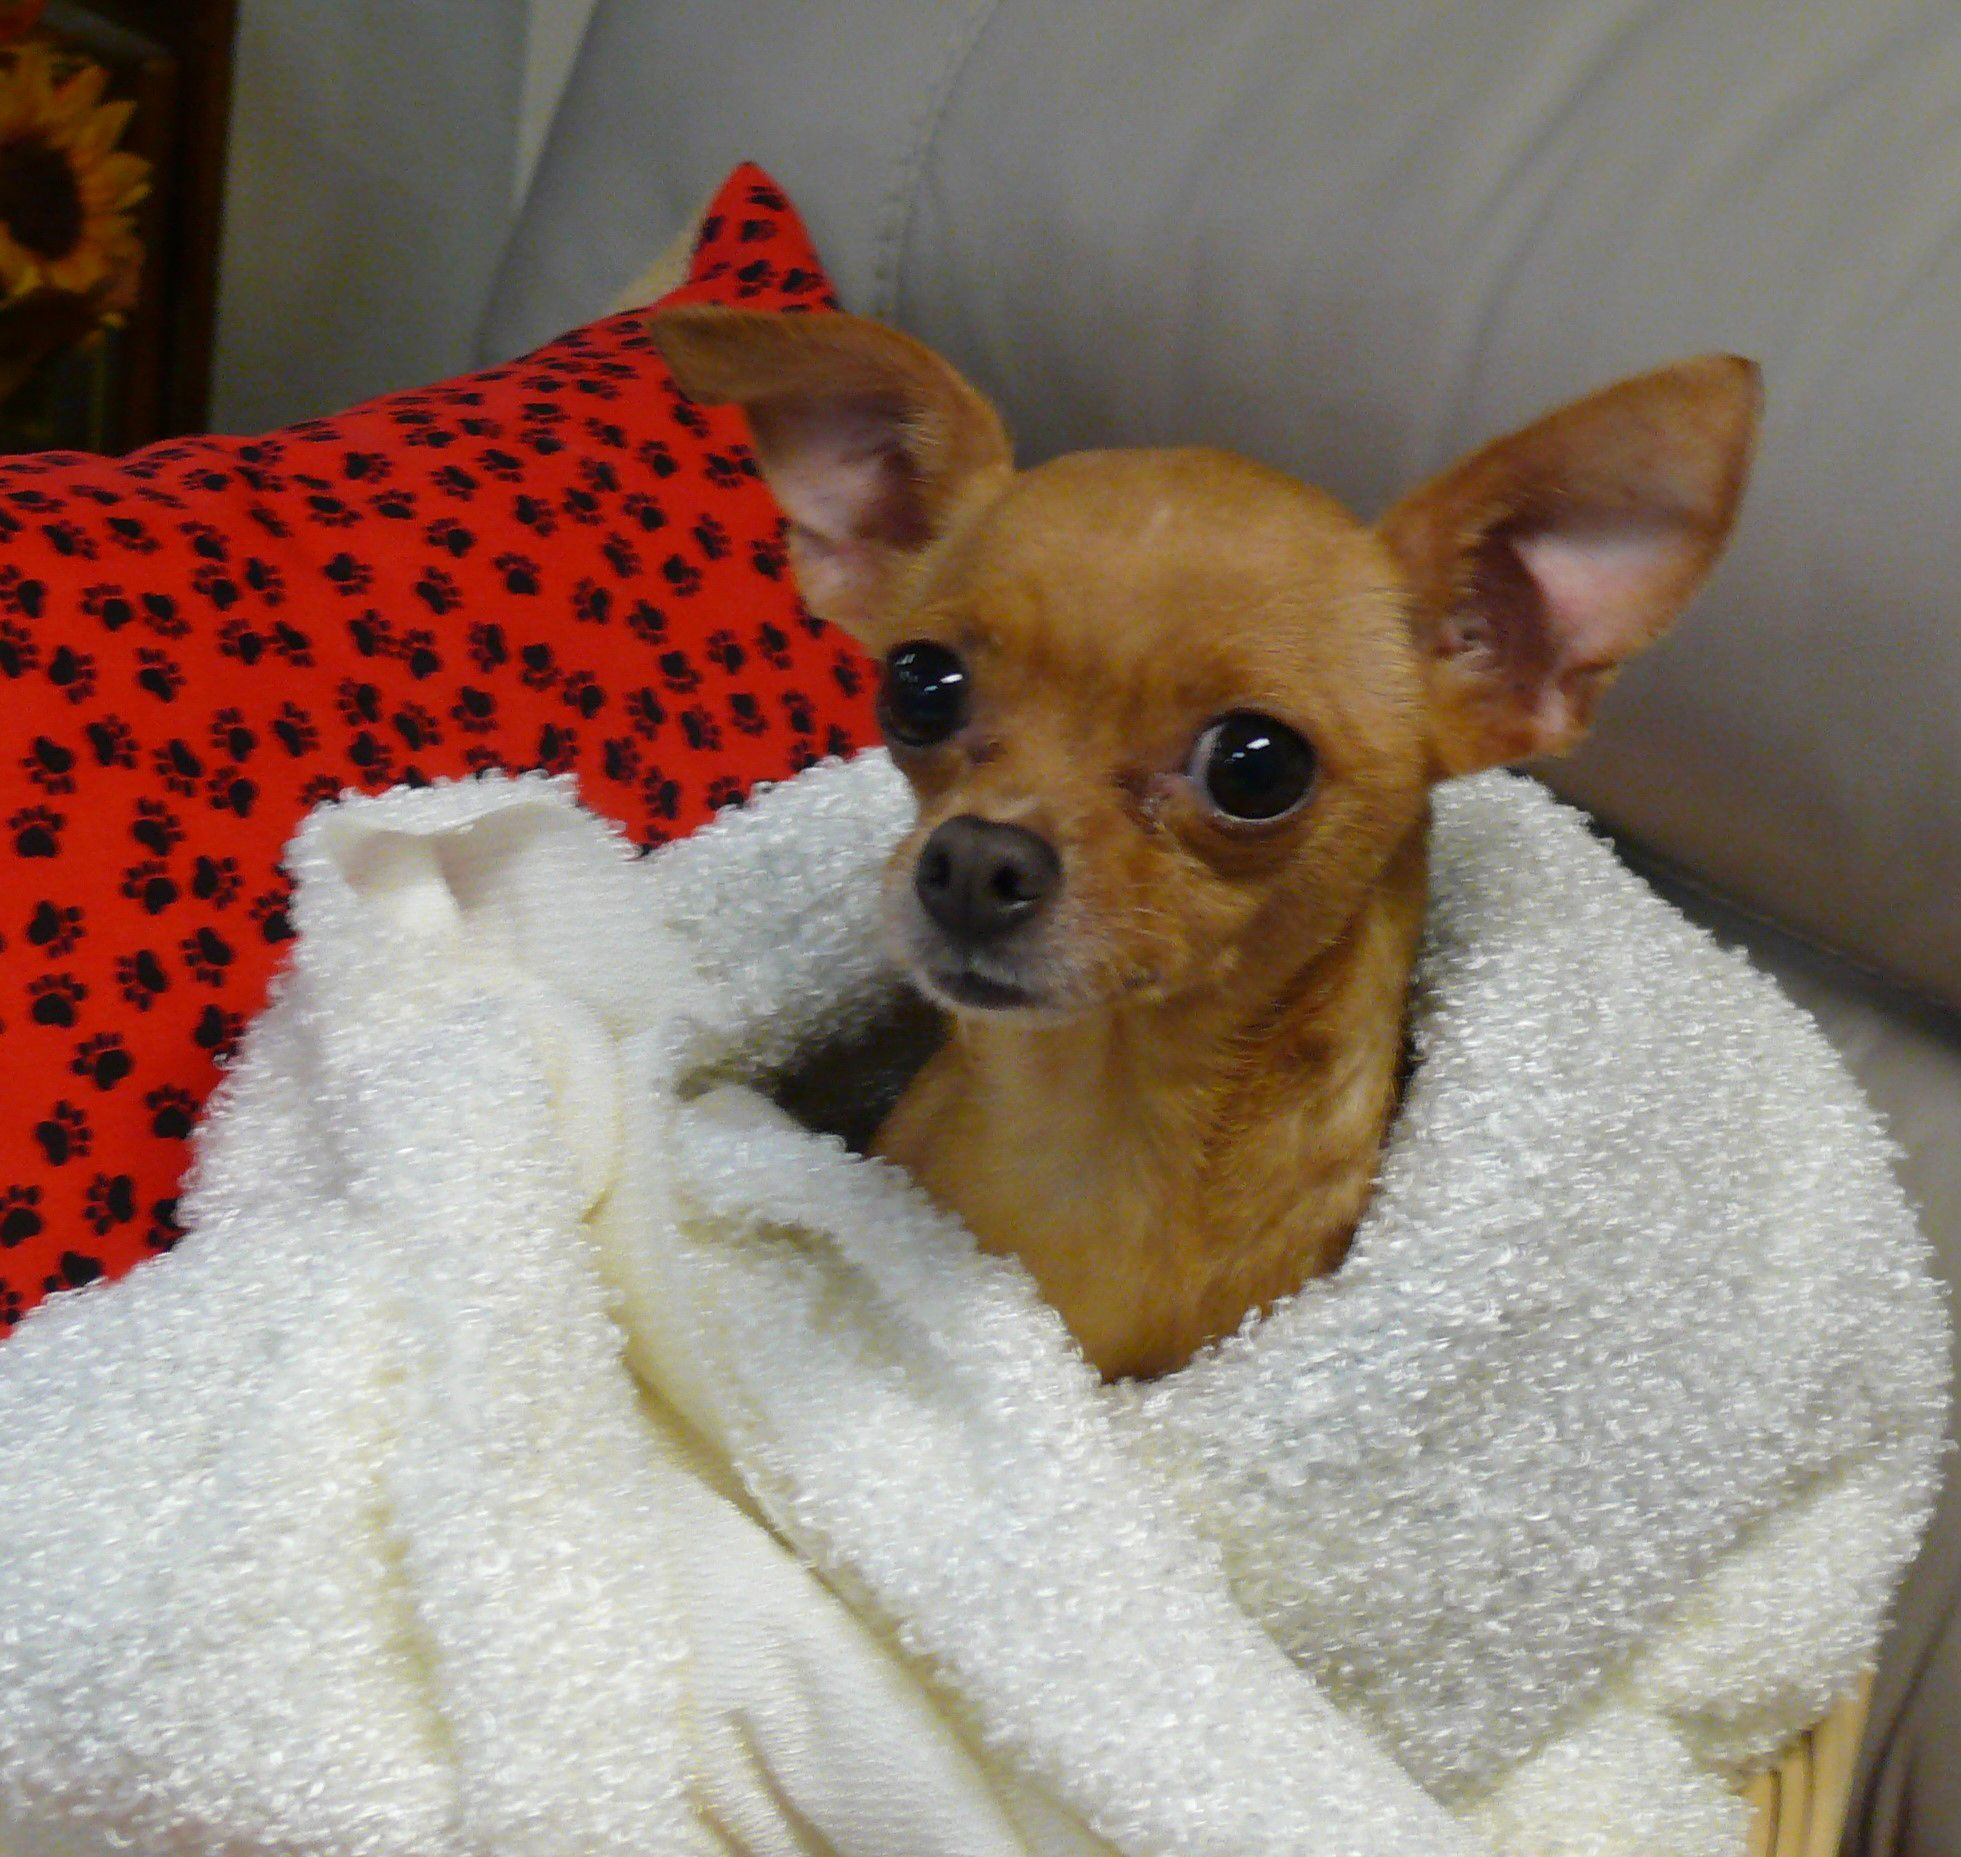 Apple Is A Purebred 4 Pound 2 Year Old Chihuahua Female Who Is